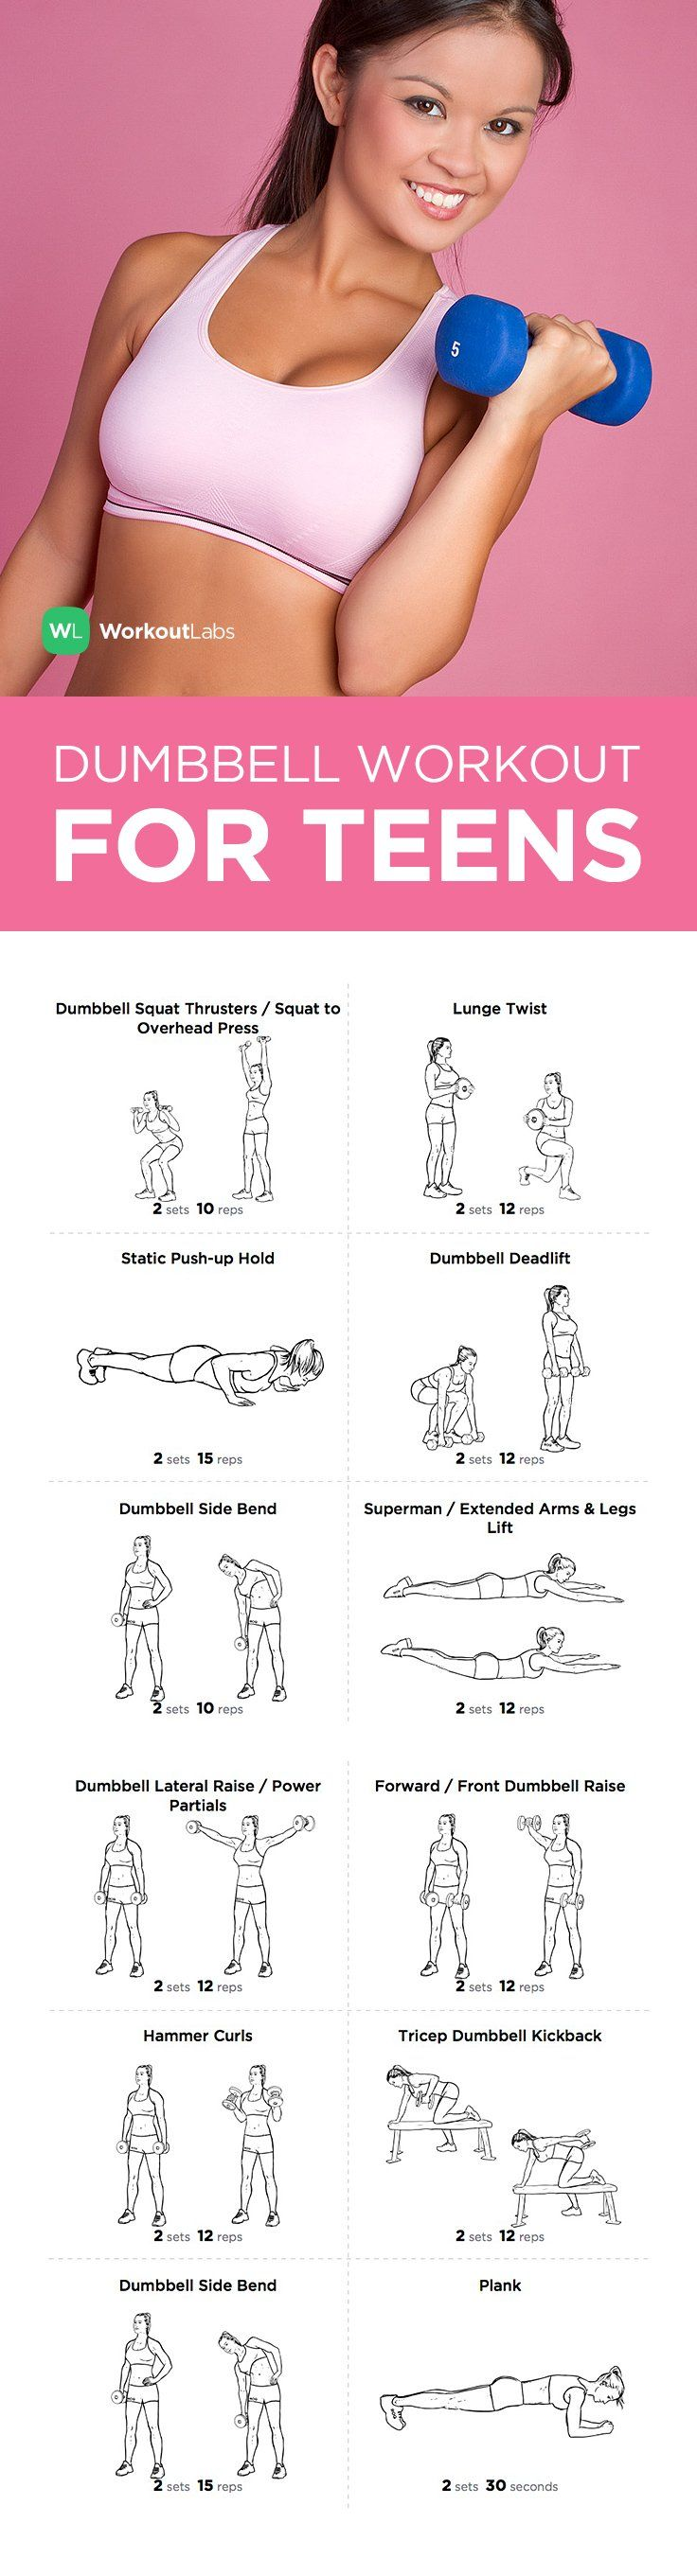 FREE PDF: Full Body Dumbbell Workout for Teen Girls and Guys – visit http://wlabs.me/1CucRxD to download!